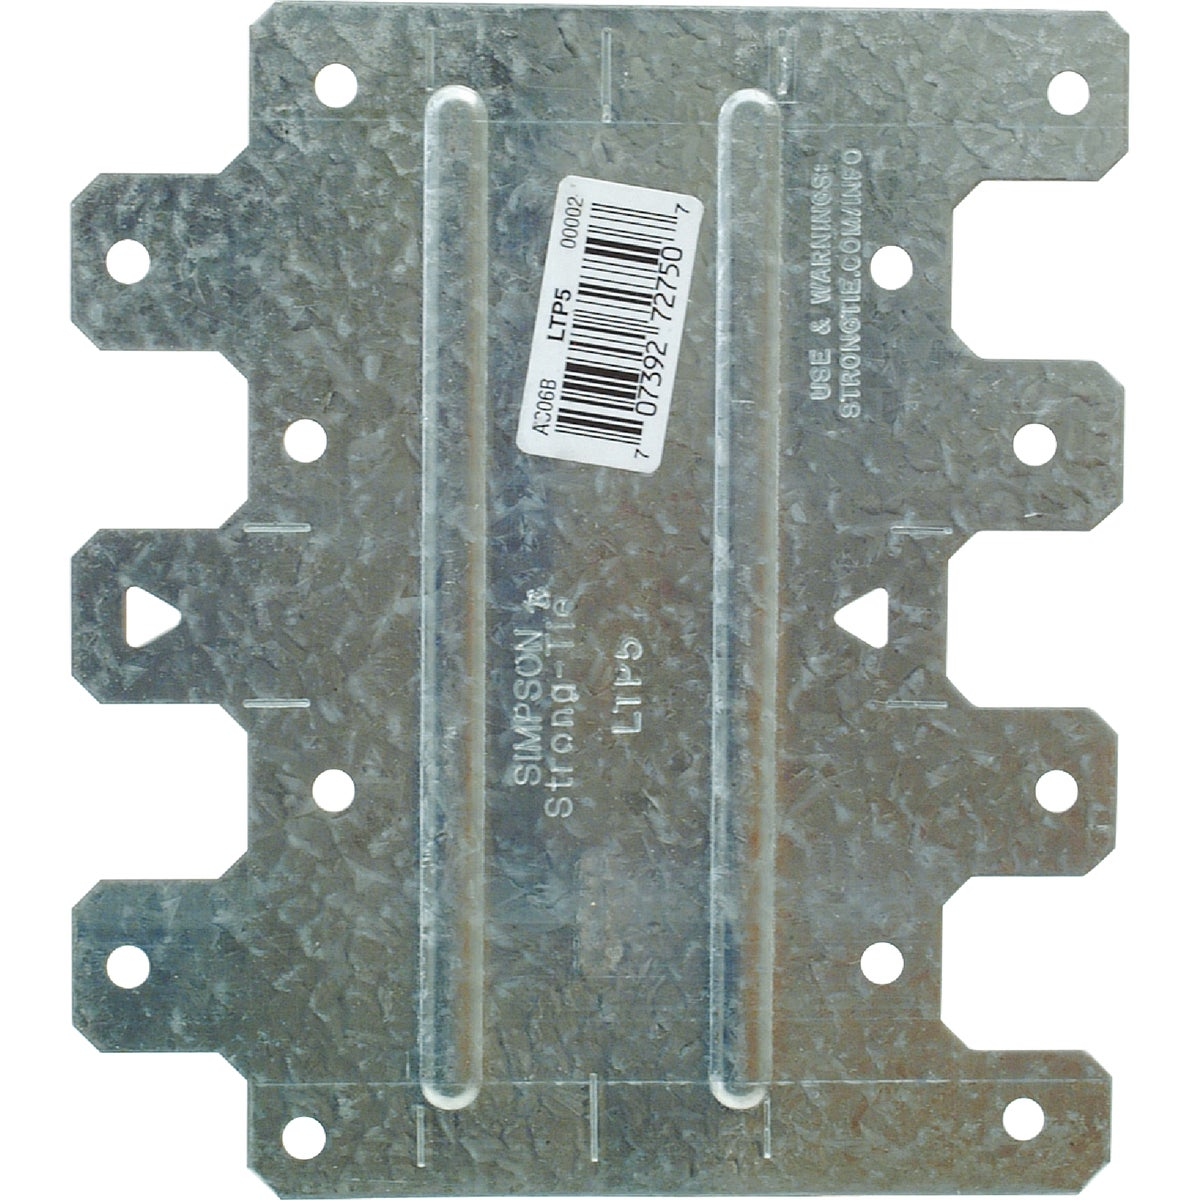 LATERAL TIE PLATE